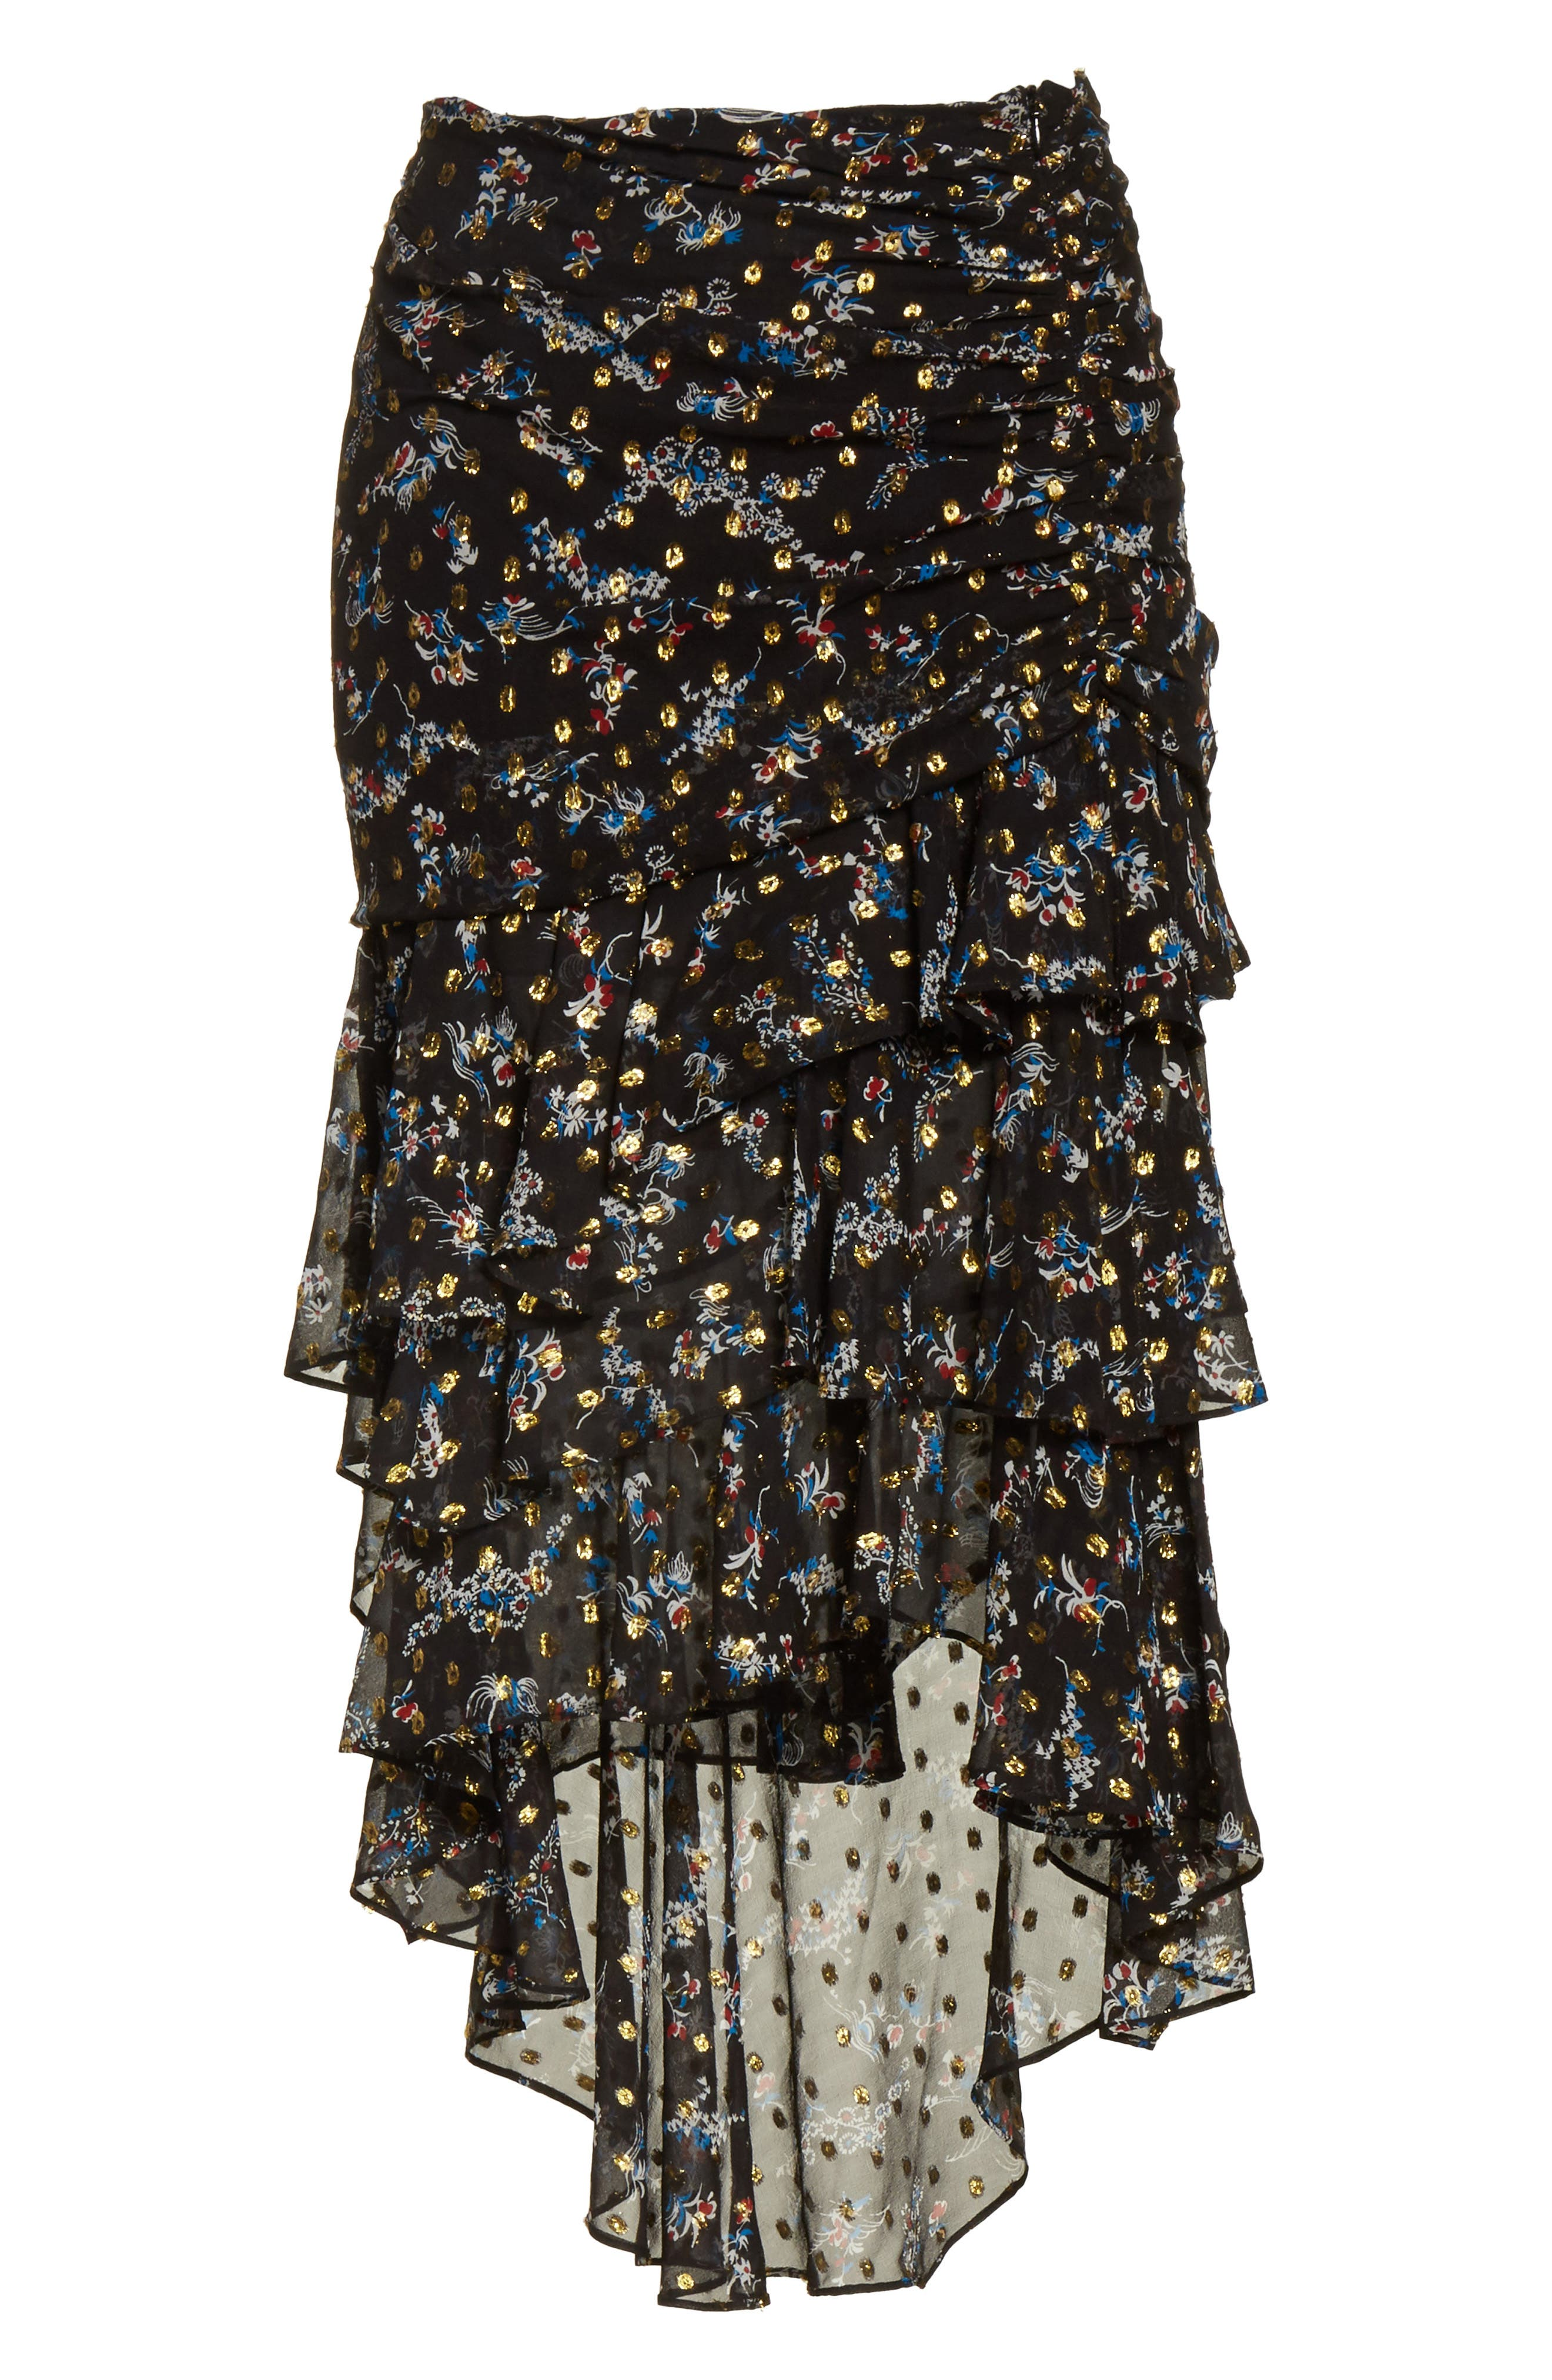 Cella Metallic Floral Print Midi Skirt,                             Alternate thumbnail 6, color,                             008